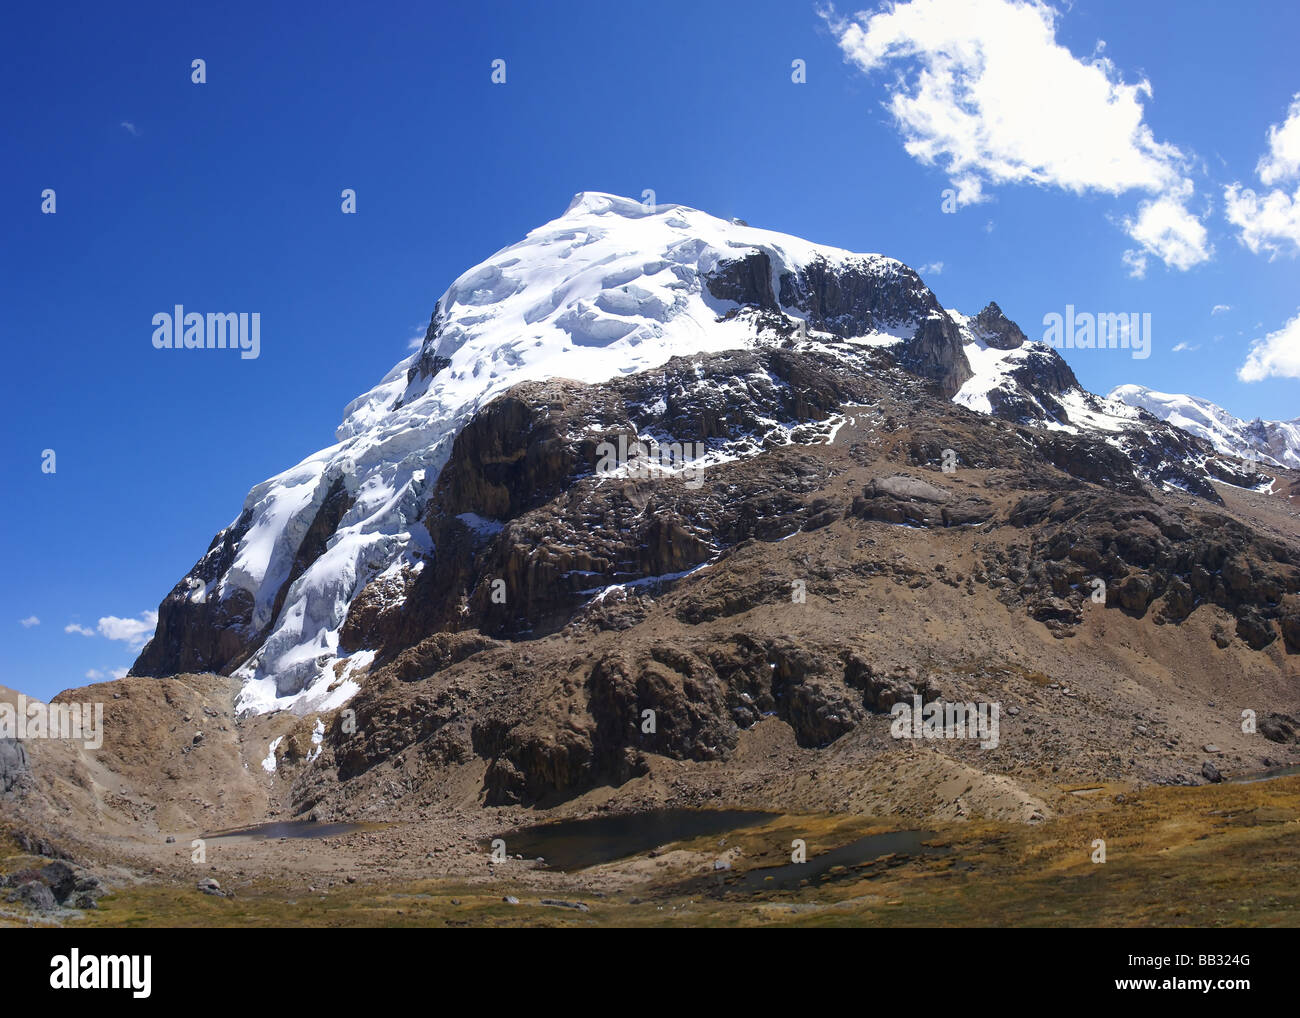 Hanging glaciers on steep rocky mountain Cuyoc Cordillera Huayhuash Andes Peru South America - Stock Image